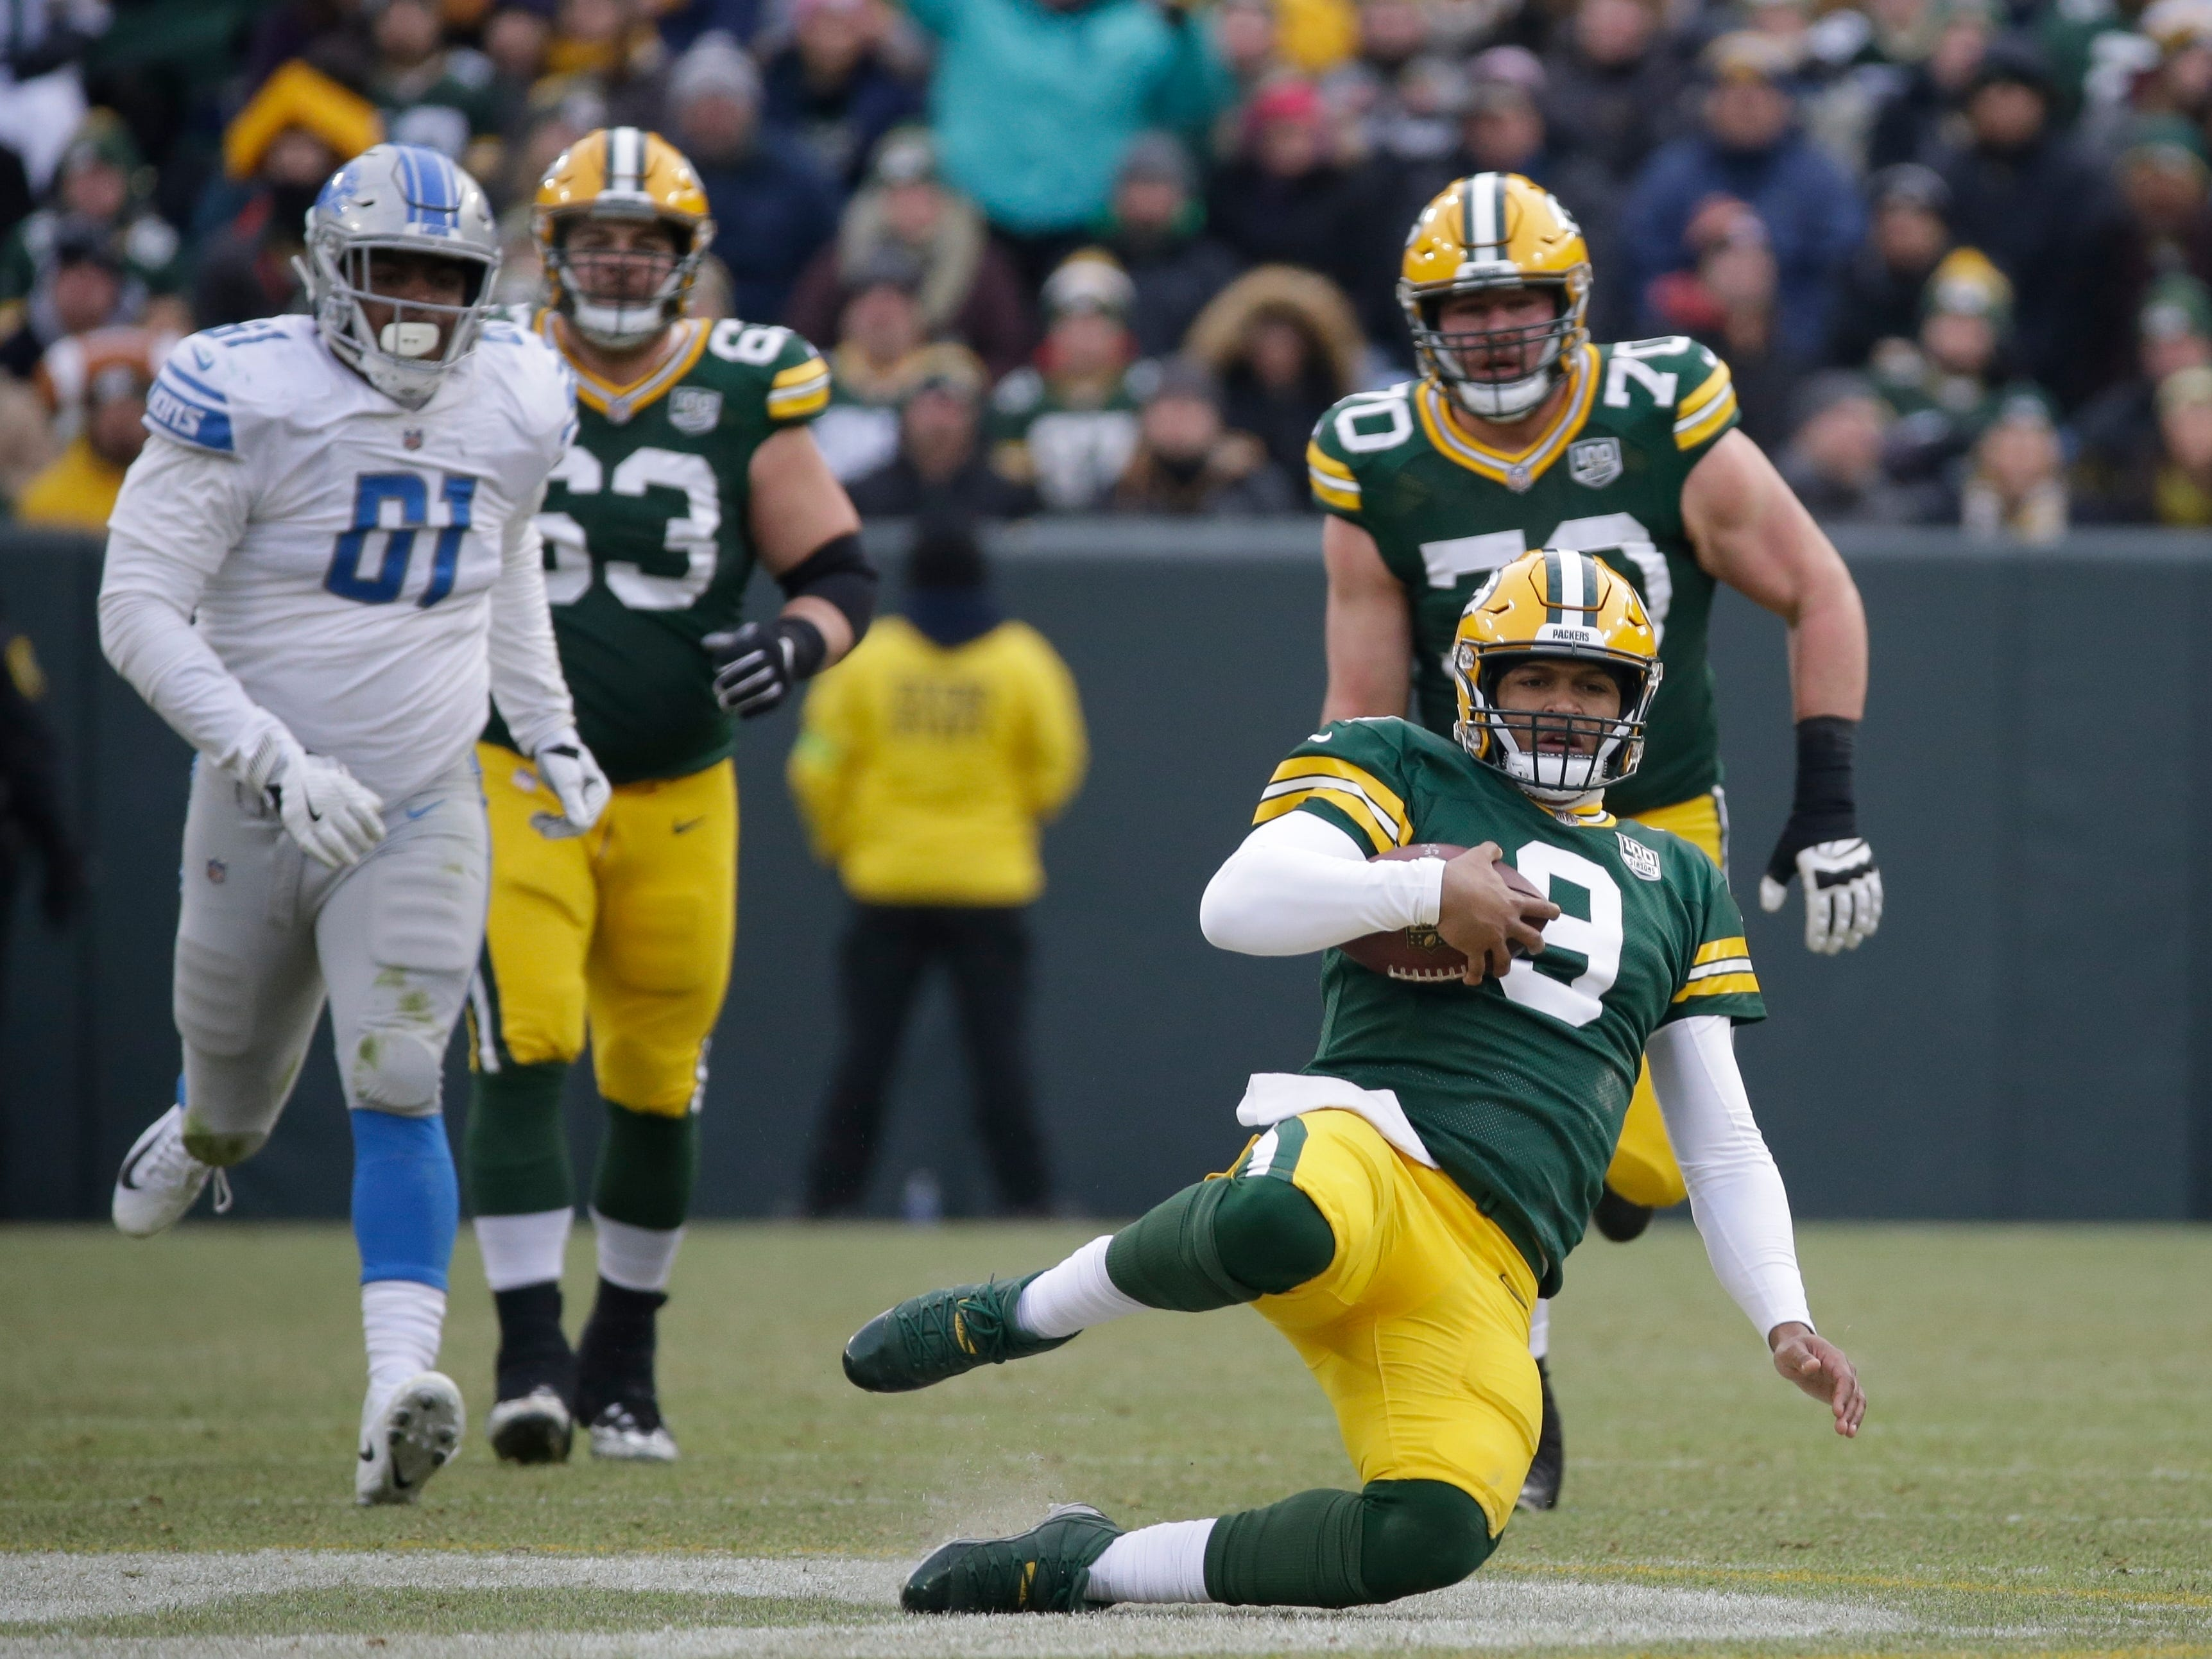 Green Bay's DeShone Kizer slides after running for a first down during the second half.